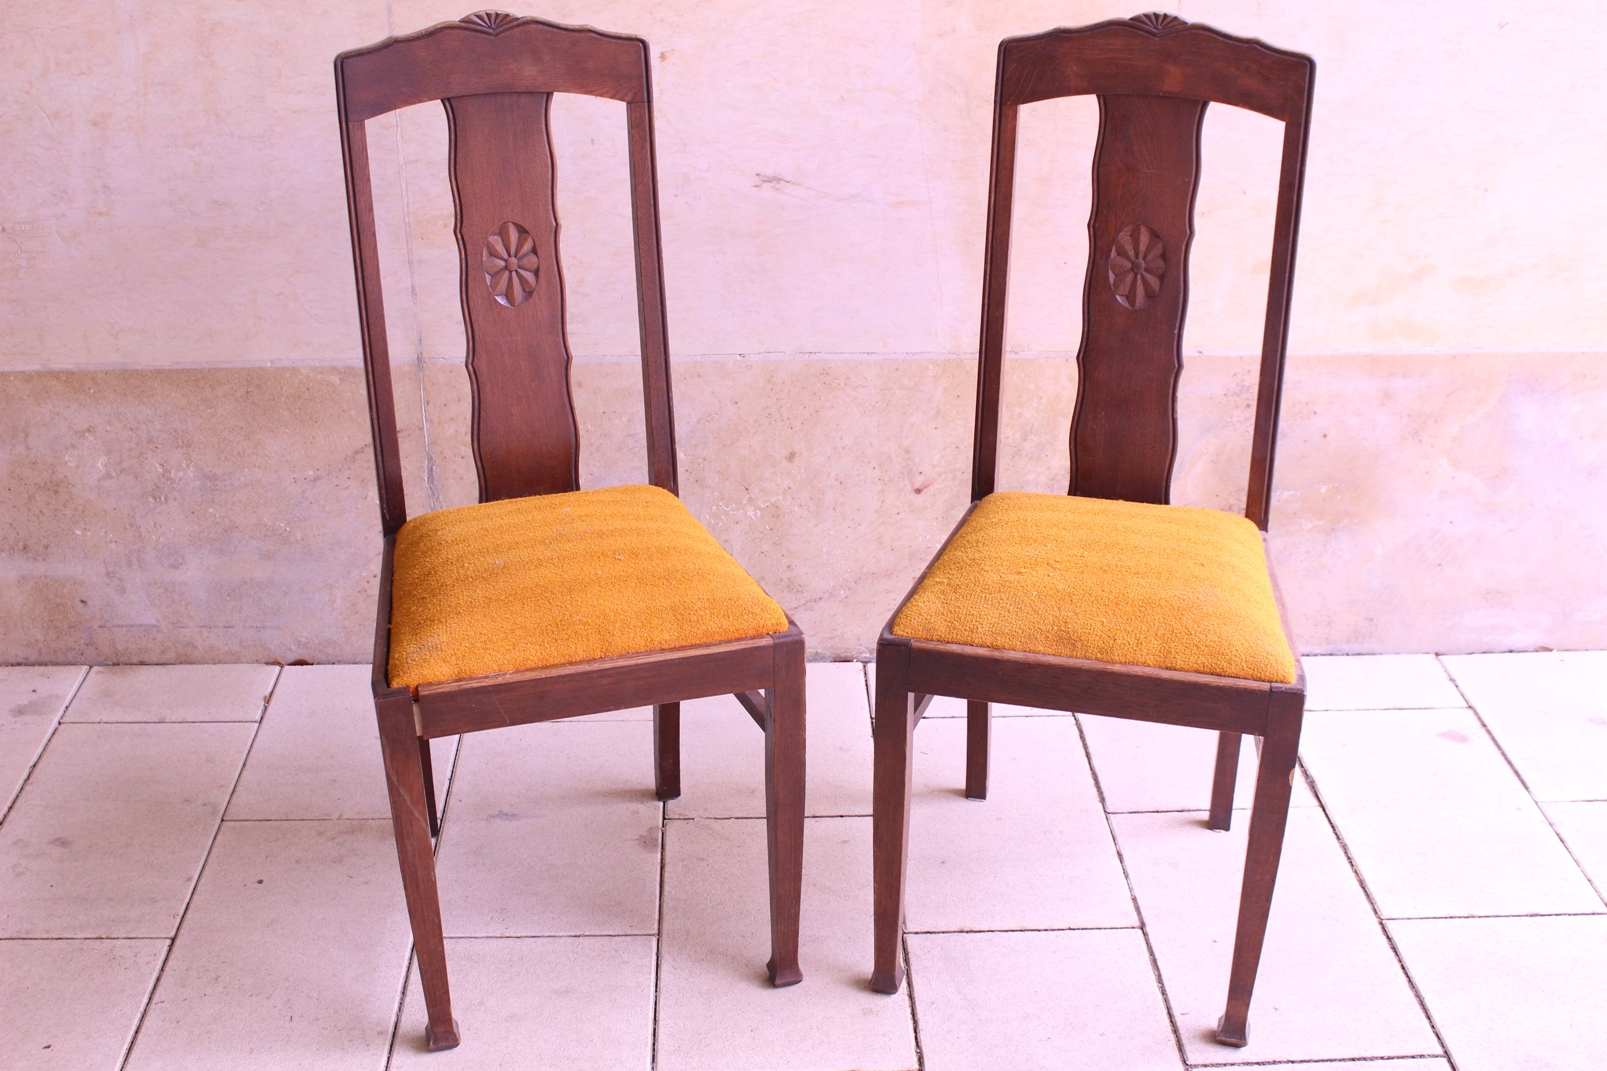 2 alte polsterst hle massiv holz federkern antik polster stuhl set jugendstil ebay. Black Bedroom Furniture Sets. Home Design Ideas